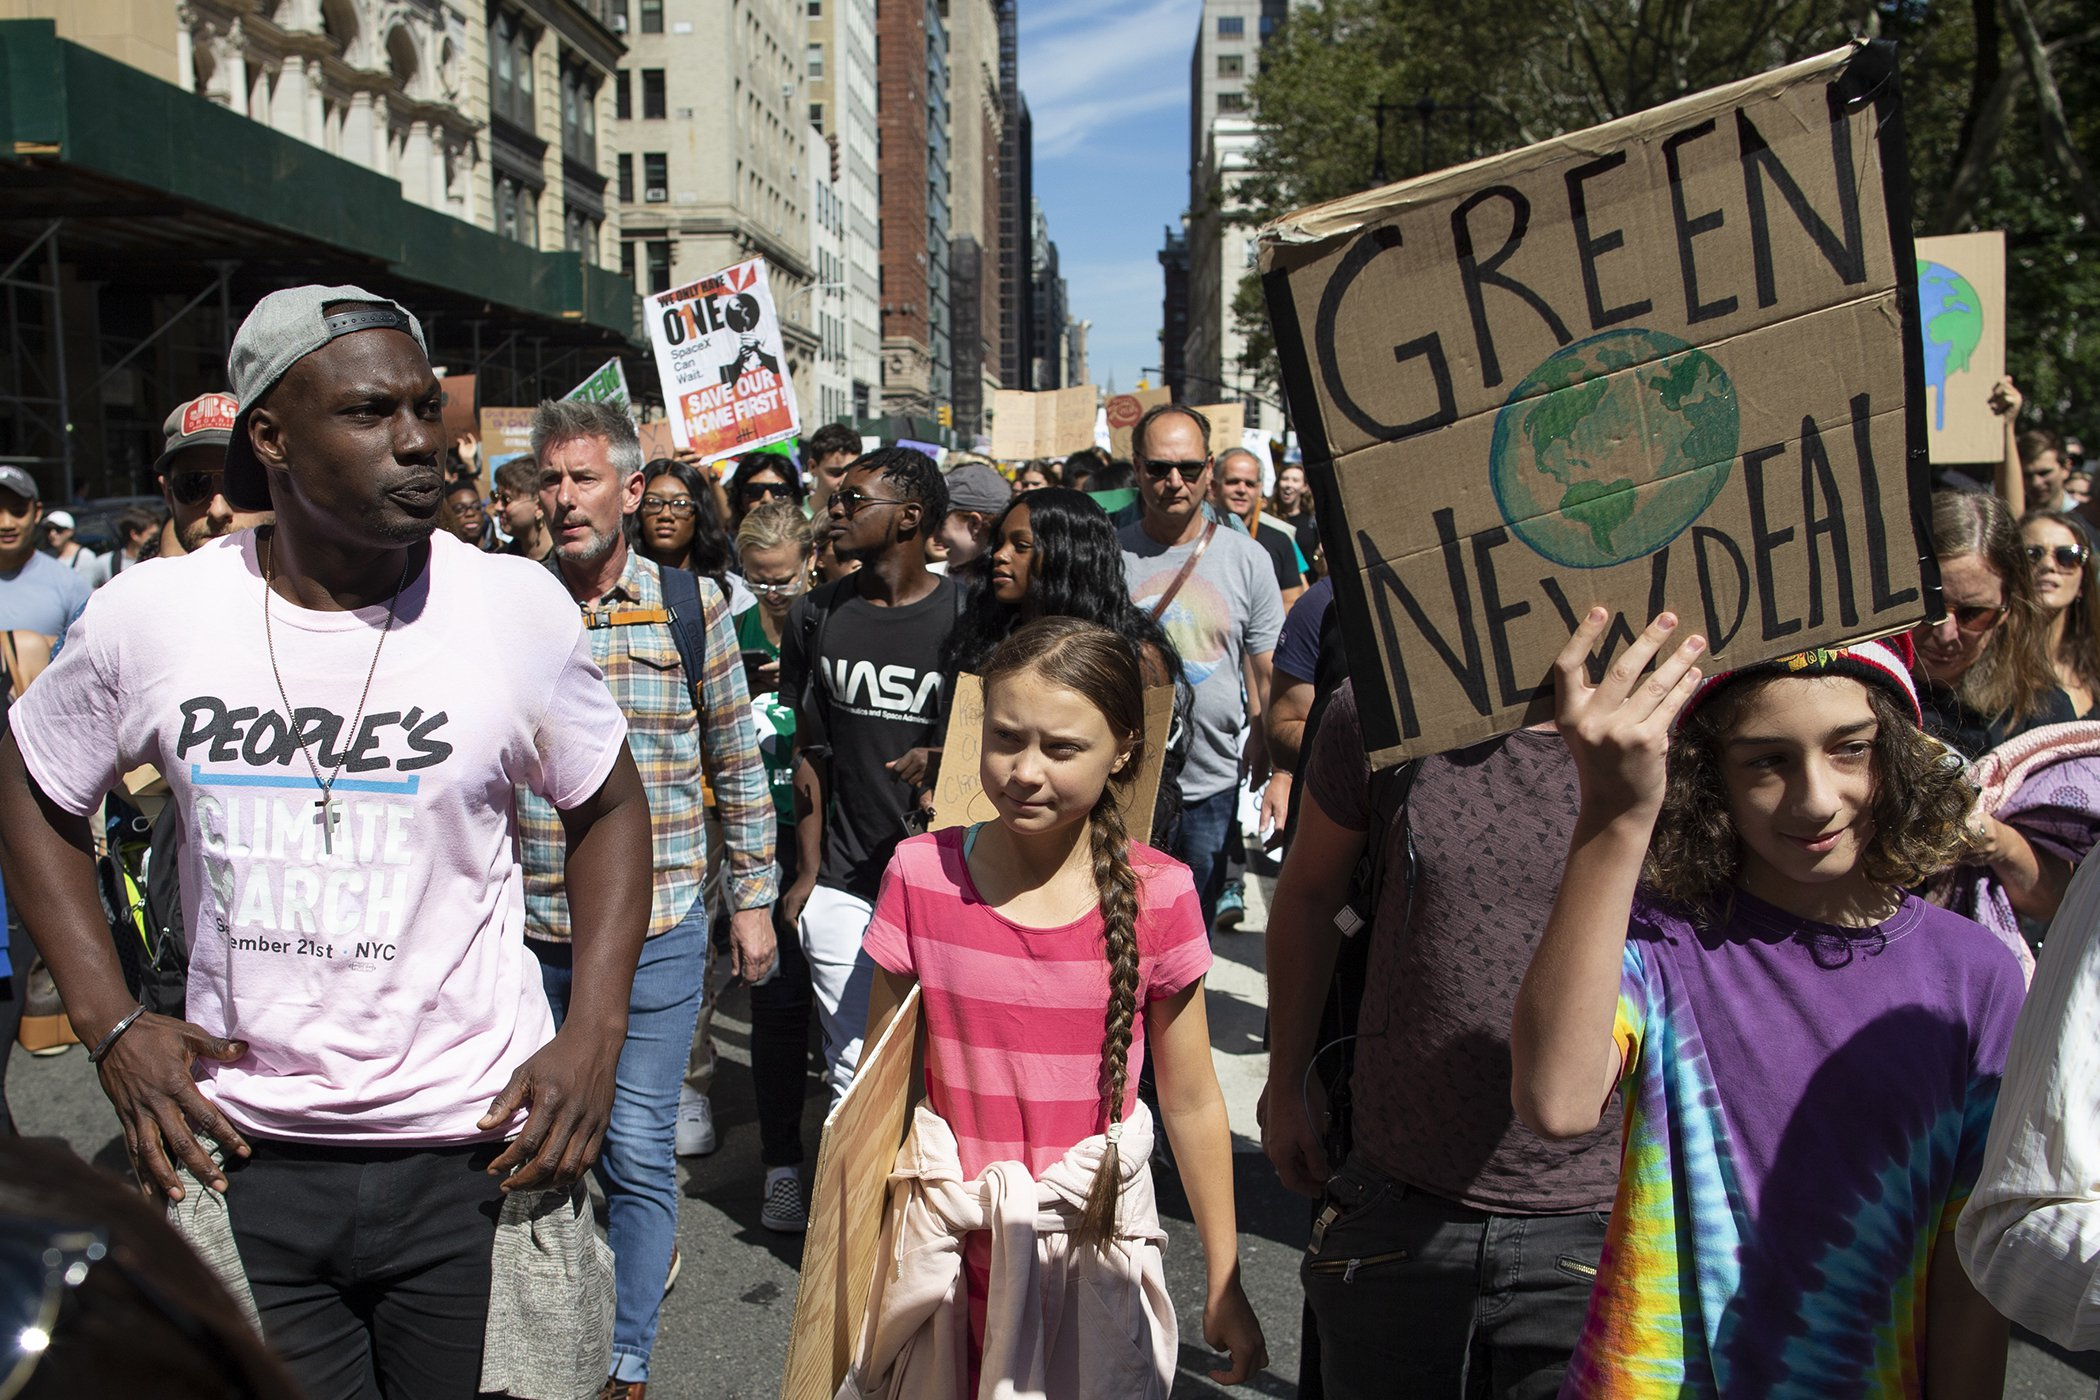 Greta-Thunberg-Cliamte-Strike-New-York.jpg